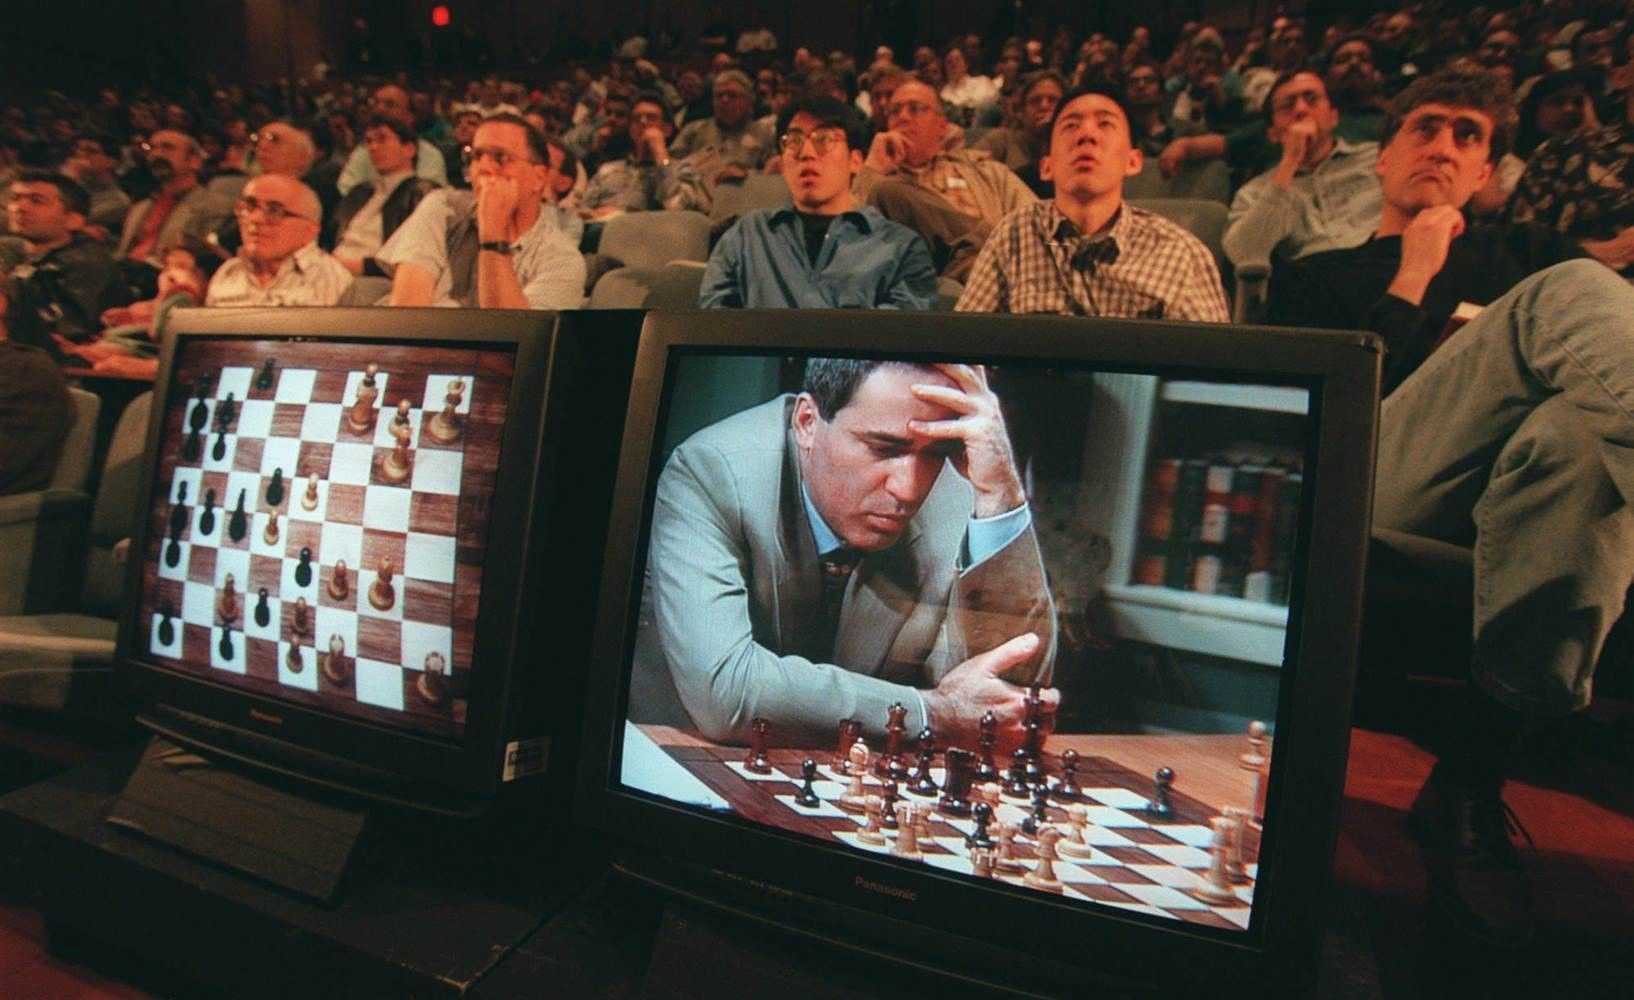 Abbildung 2: Sechstes und letztes Spiel im Rematch zwischen Schachweltmeister Garry Kasparov und IBM-Supercomputer Deep Blue, New York, 1997